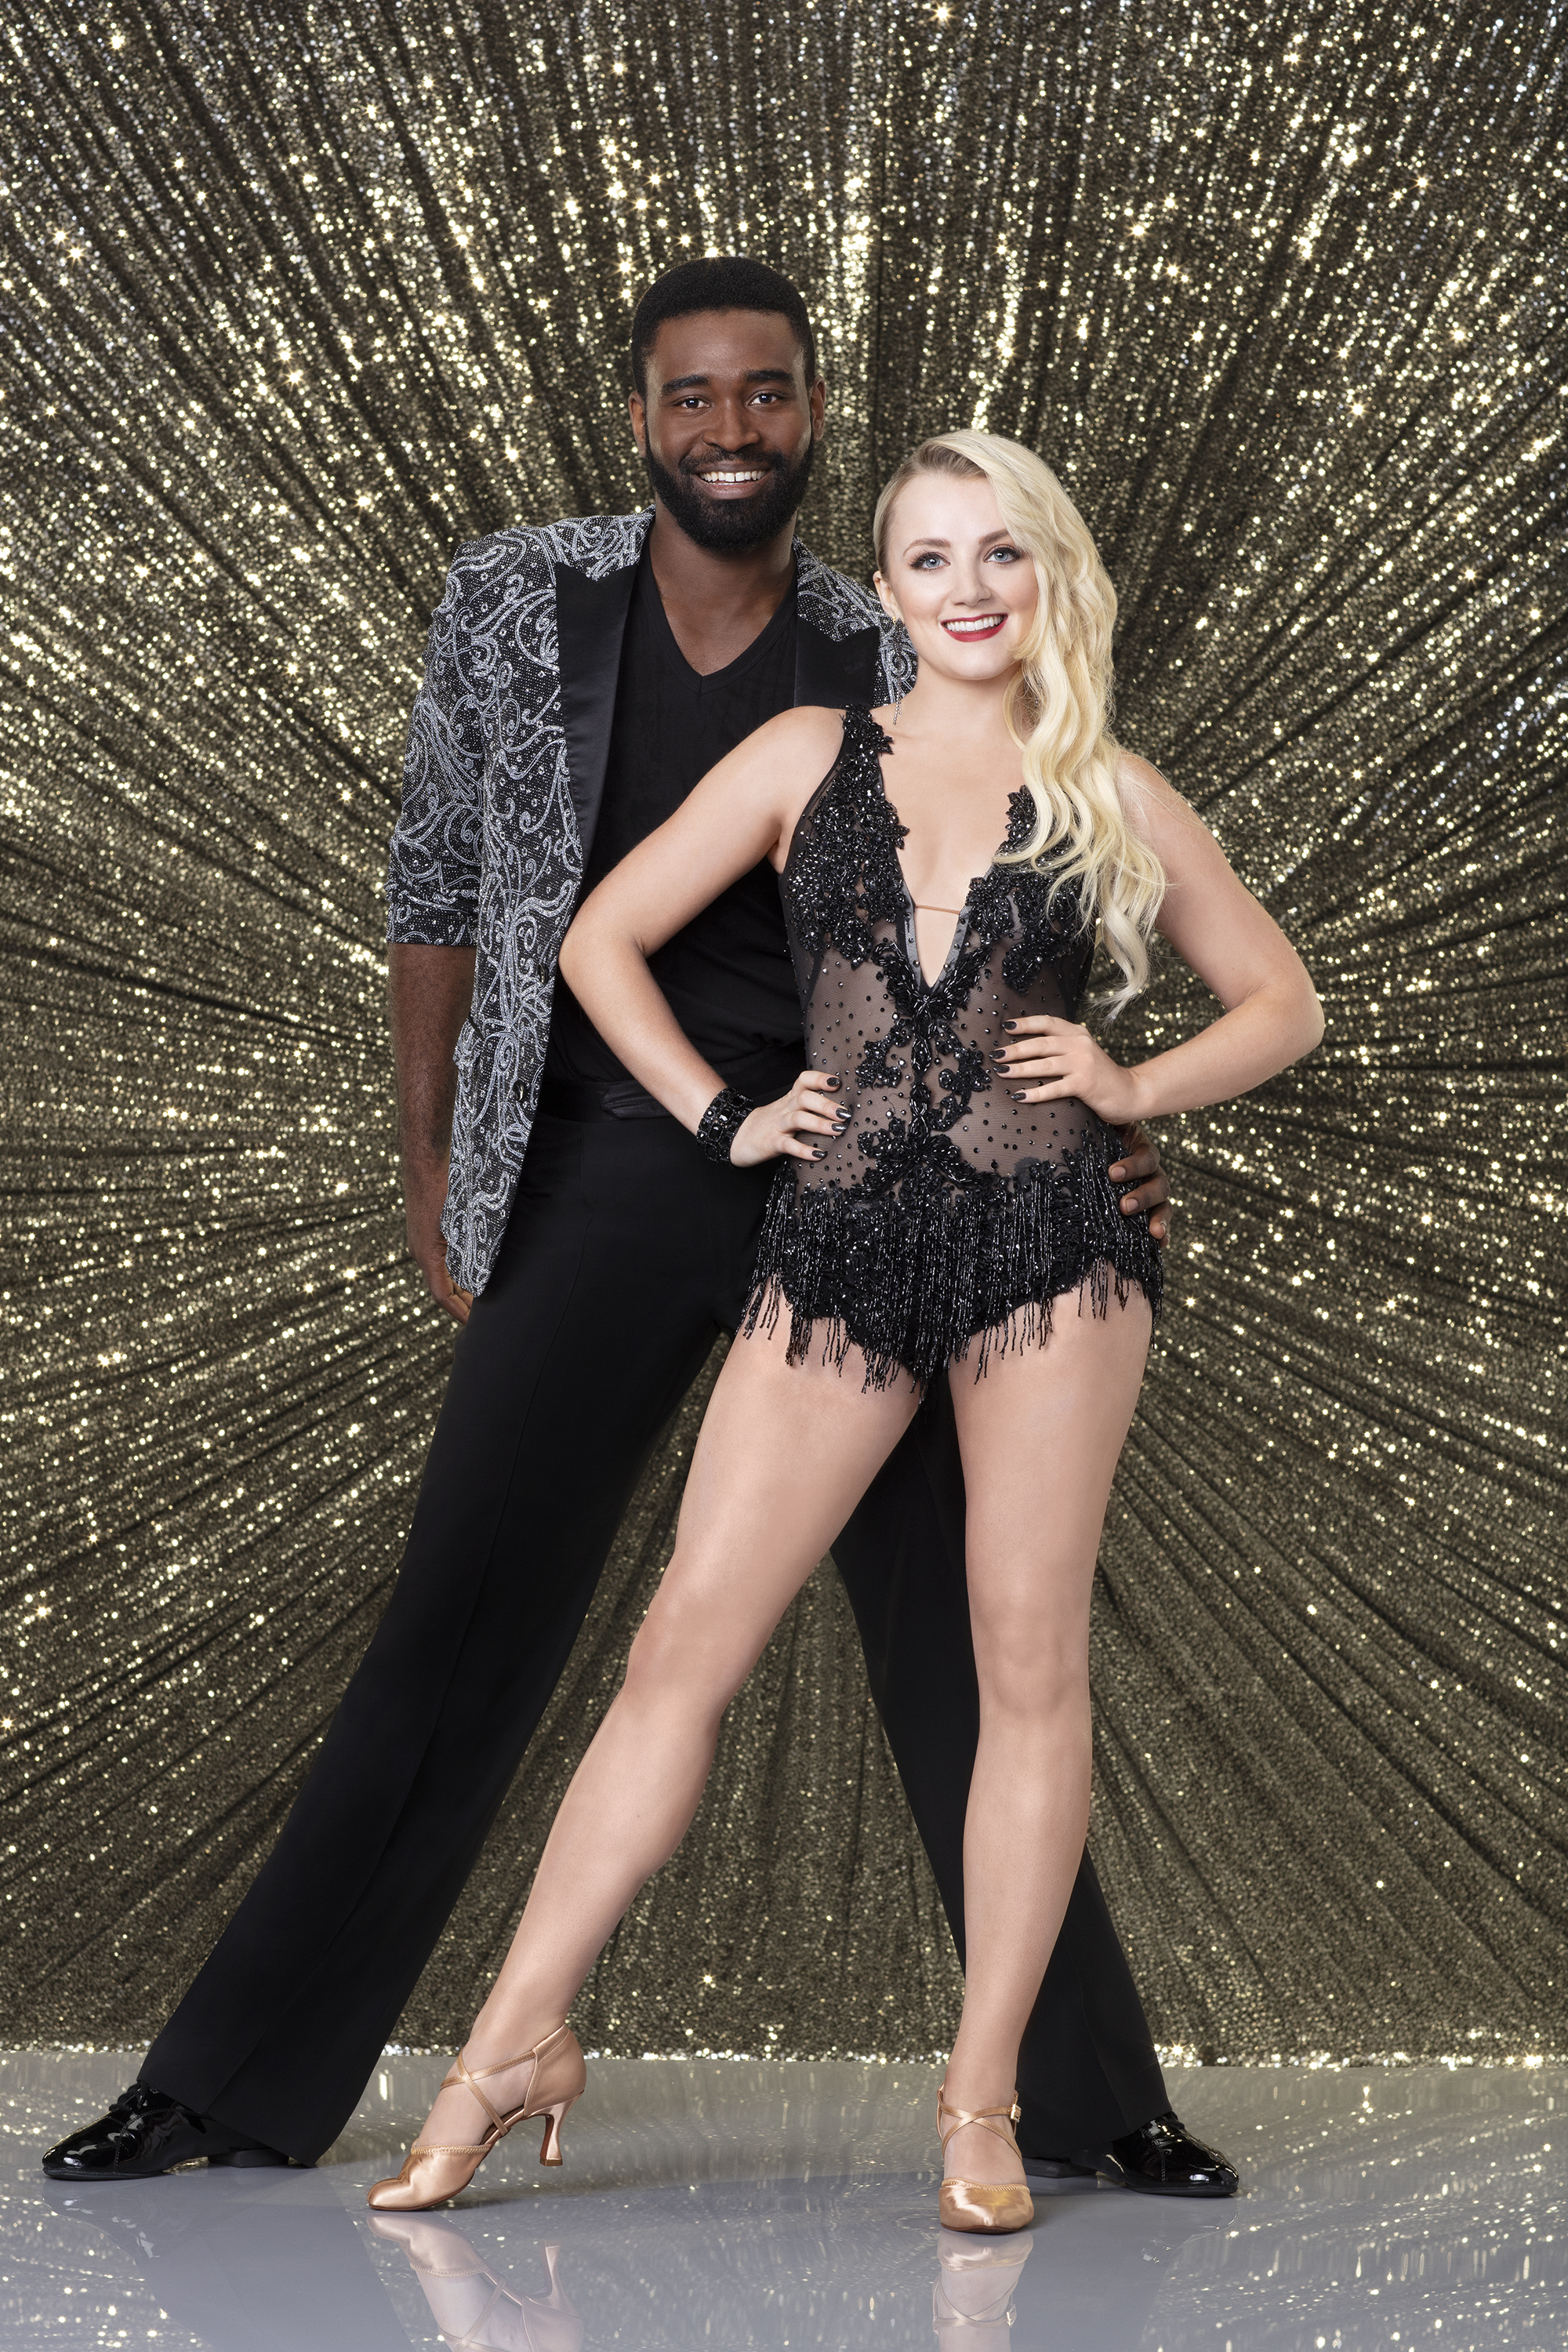 Keo Motsepe and Evanna Lynch, Dancing with the Stars